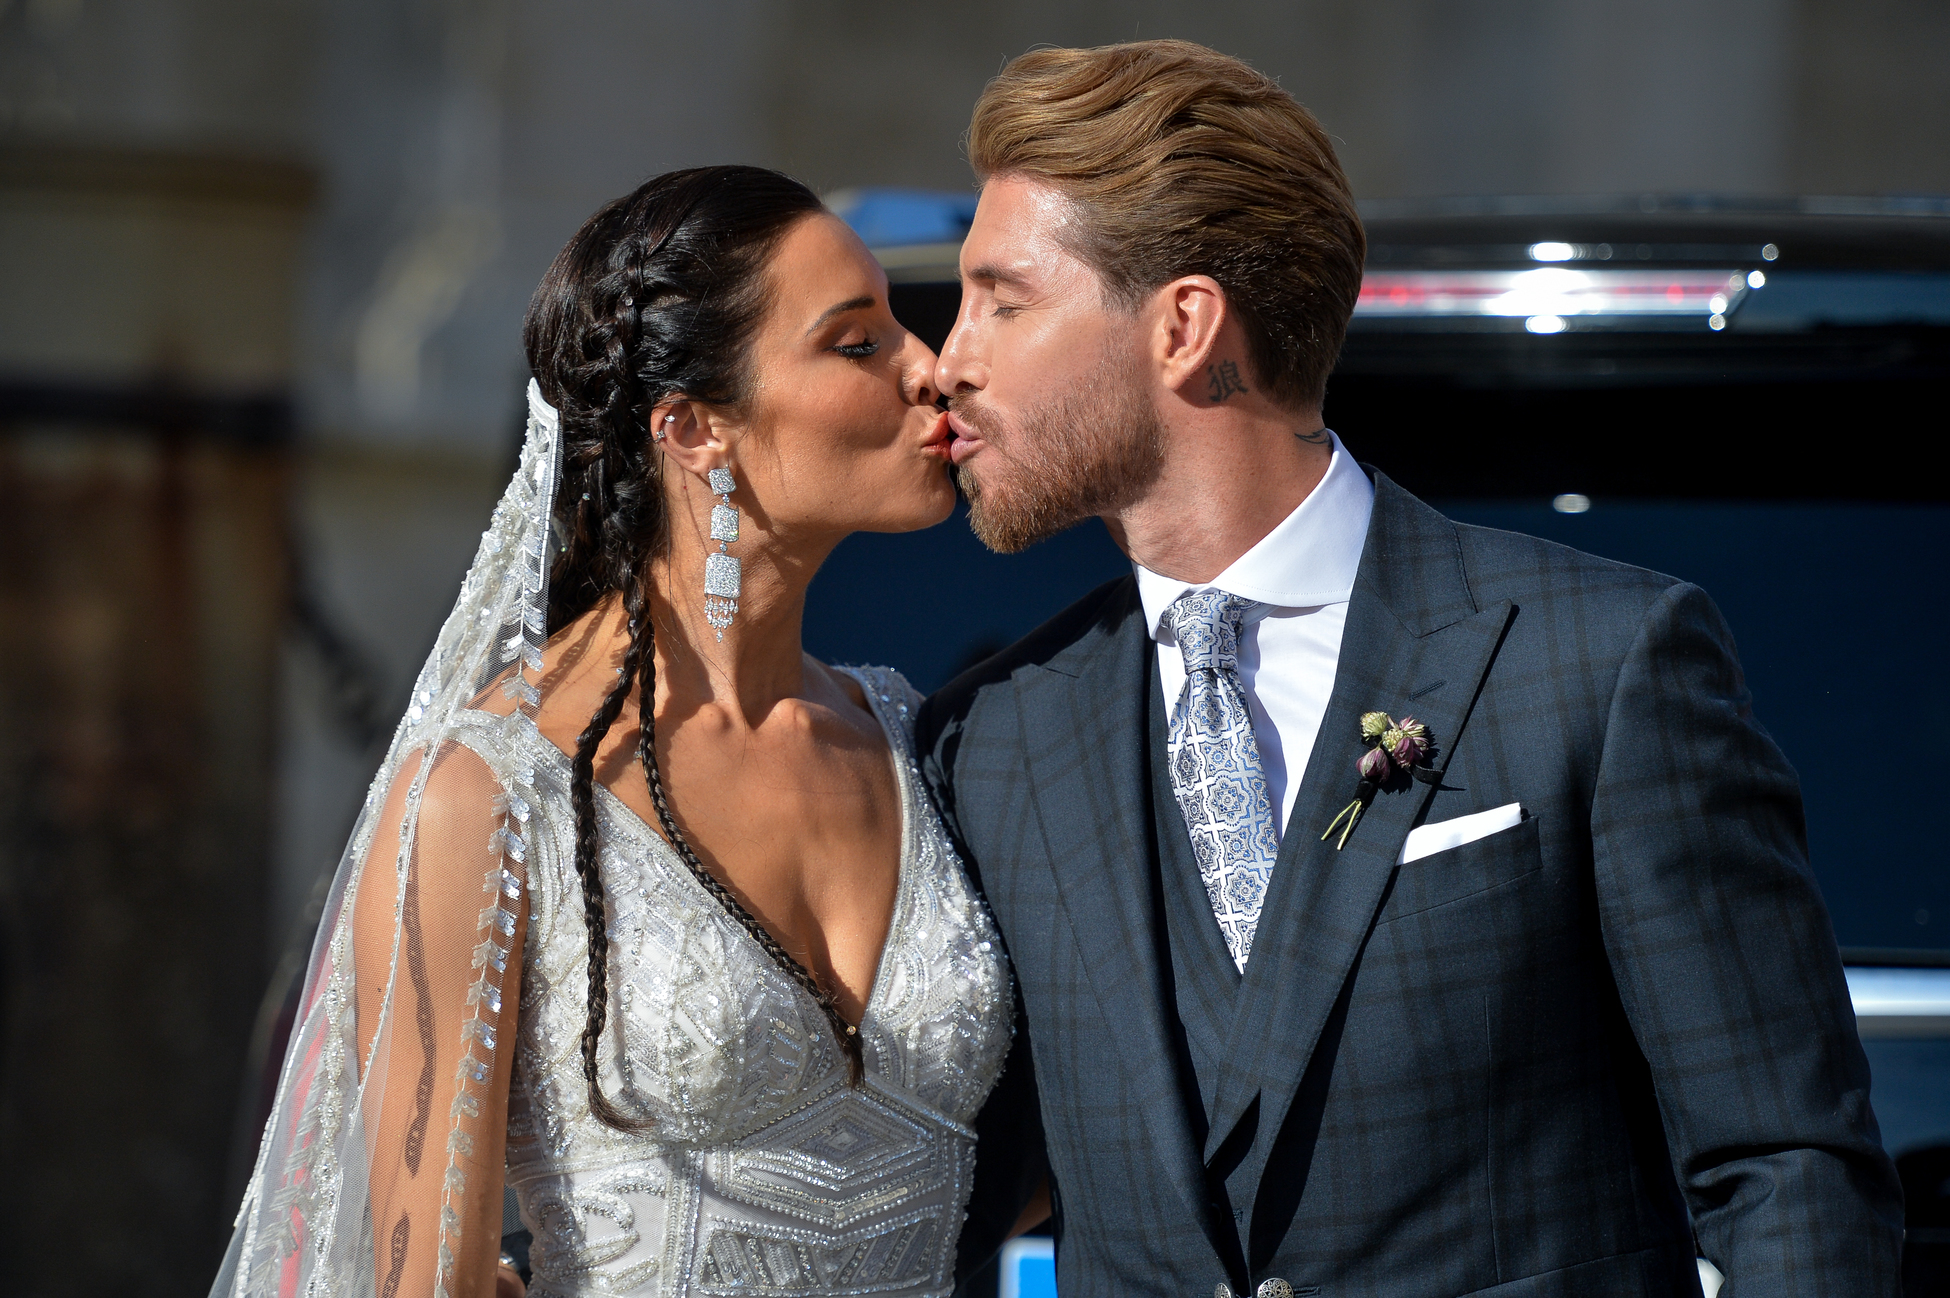 SEVILLE, SPAIN - JUNE 15: The bride Pilar Rubio and Sergio Ramos pose after their wedding at Seville's Cathedral on June 15, 2019 in Seville, Spain. (Photo by Aitor Alcalde/Getty Images)